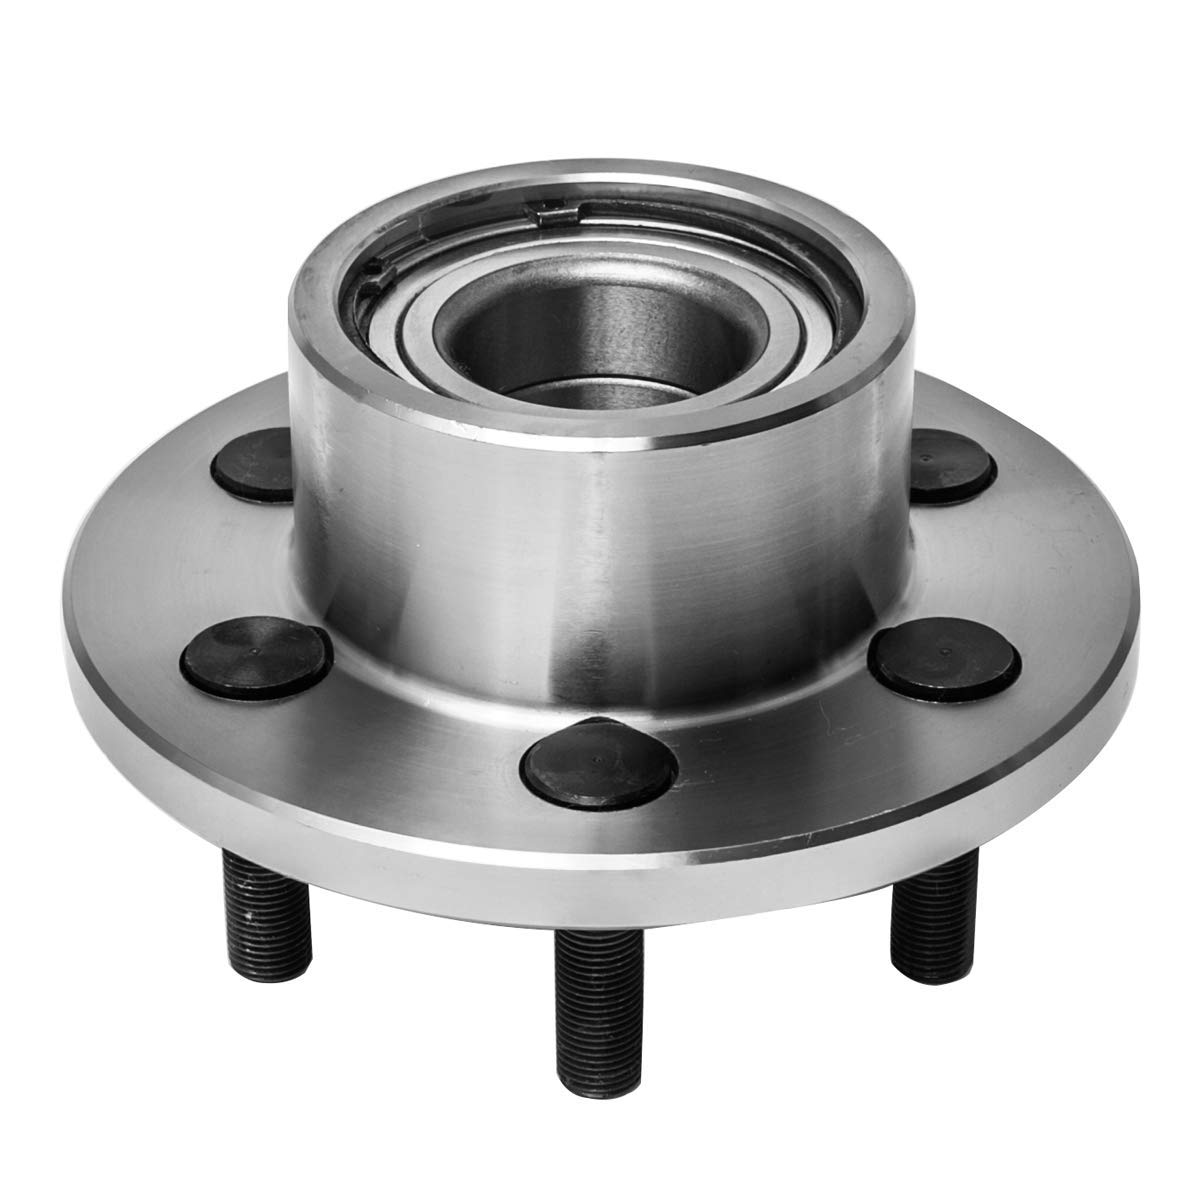 Bodeman 1997-04 Dakota 2WD Front Wheel Hub /& Bearing Assembly No ABS for 1999-2003 Dodge Durango 2WD